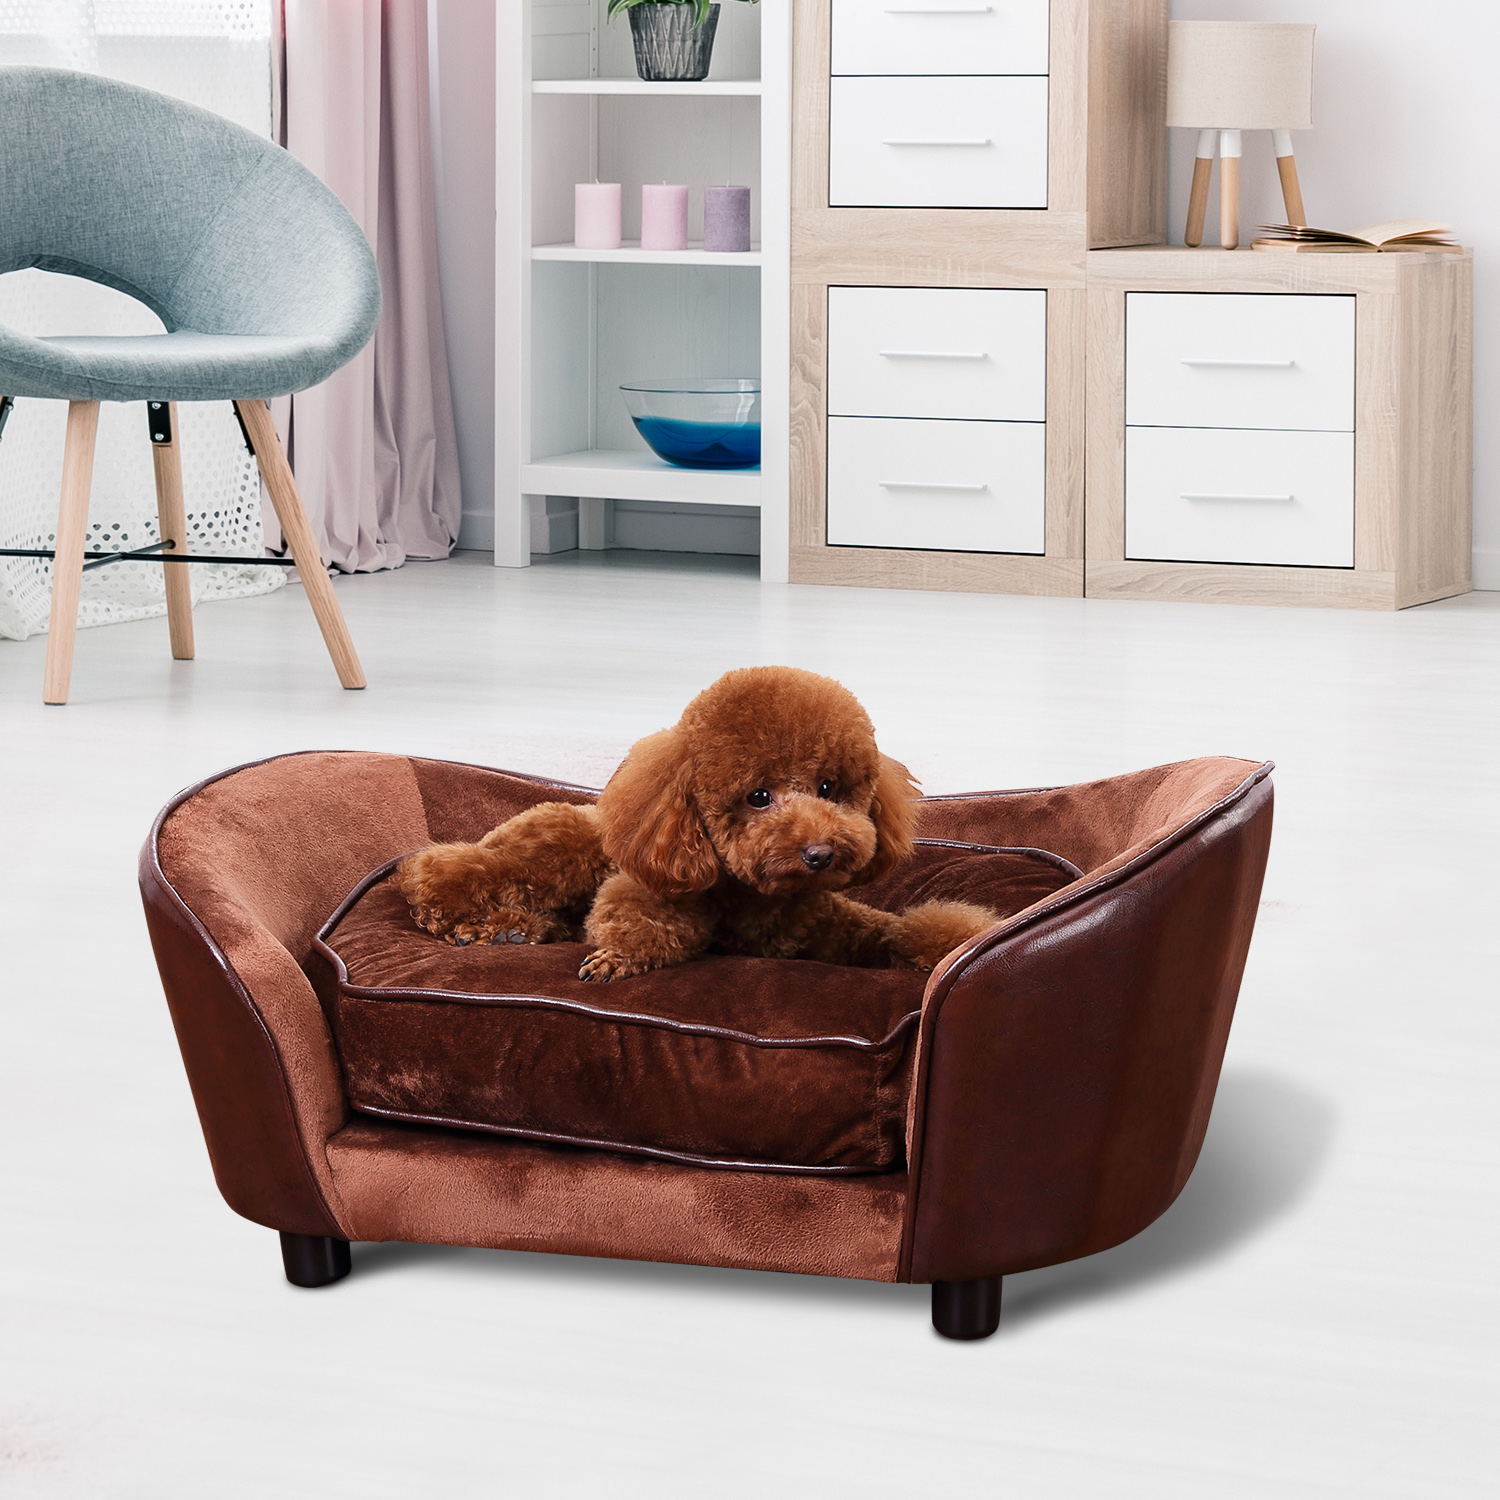 2 Size Pet Sofa Chair Dog Puppy Cat Kitten Soft Couch Bed